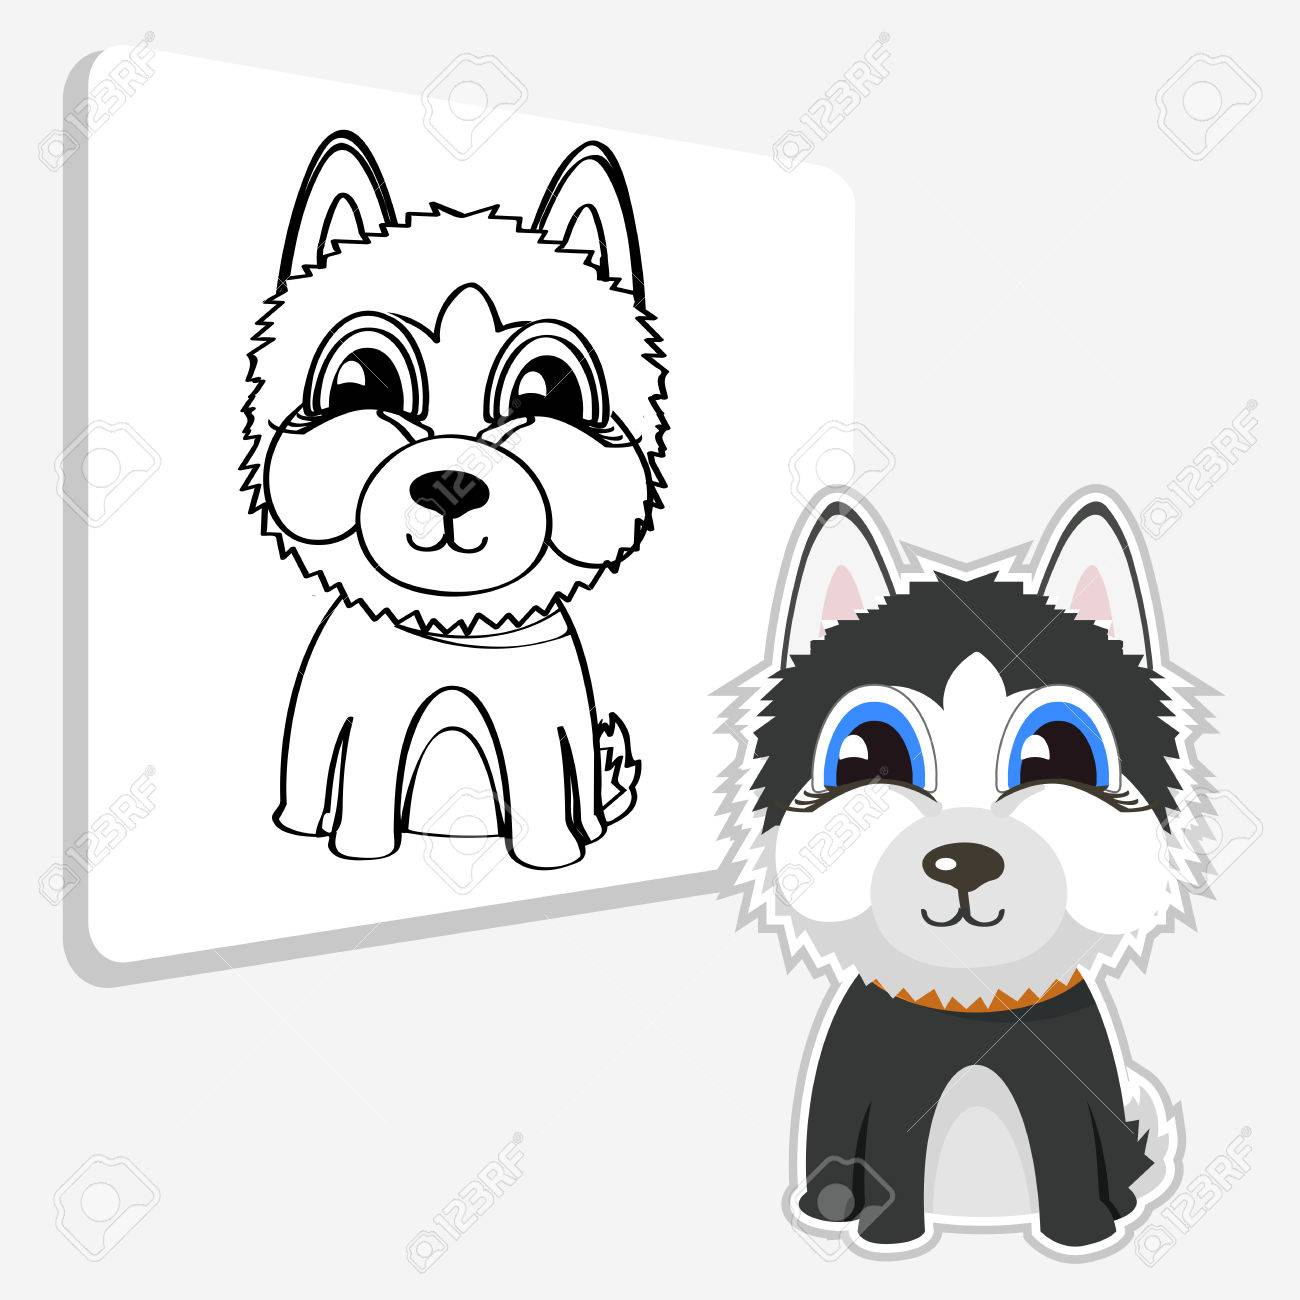 Siberian Husky. Vector Illustration And Coloring Page Royalty Free ...